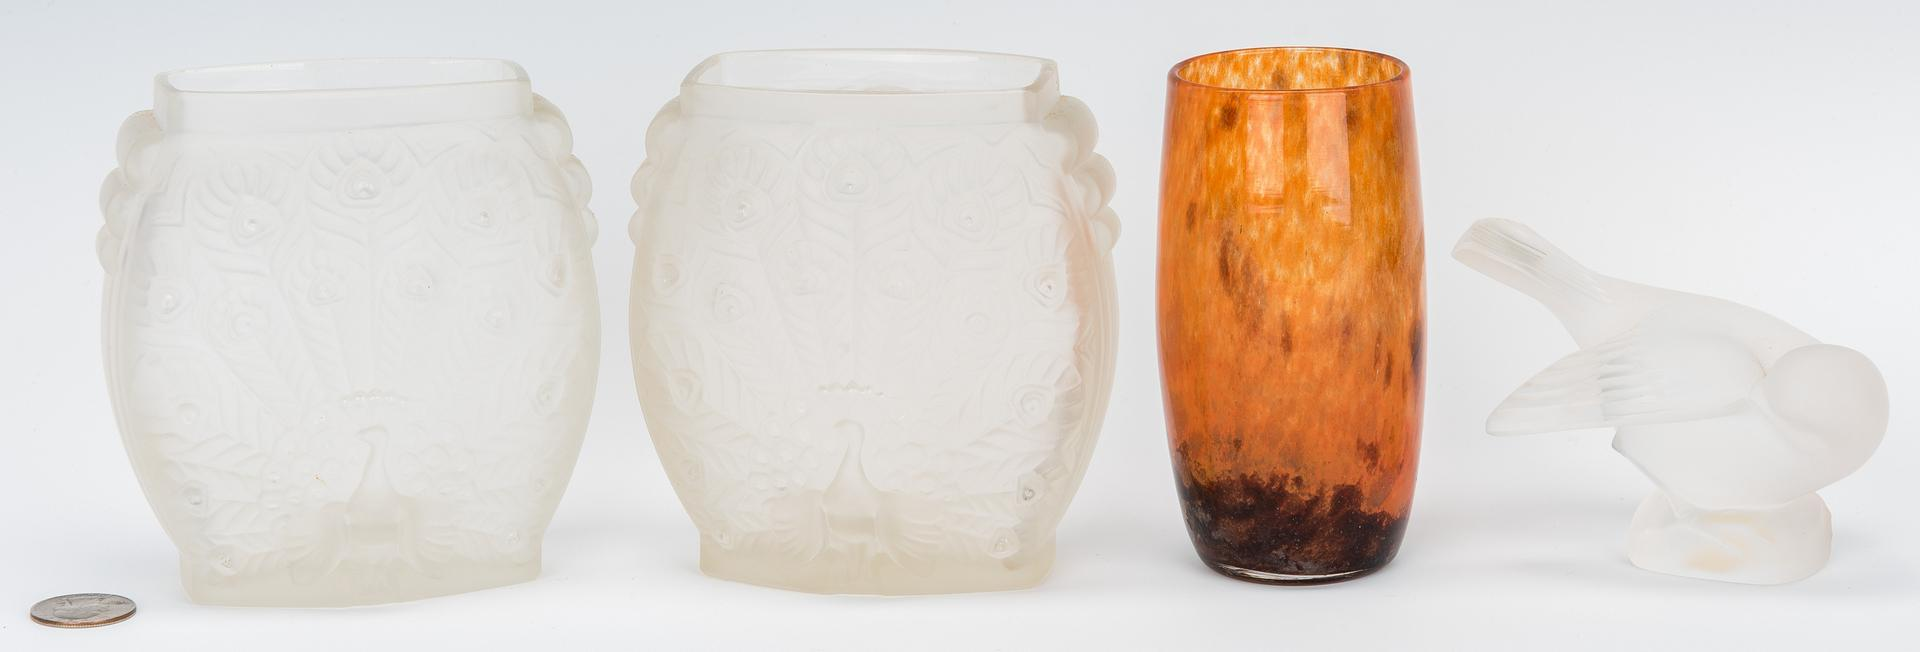 Lot 975 - Daum Art Glass Vase & 3 Frosted Glass Items, 4 items